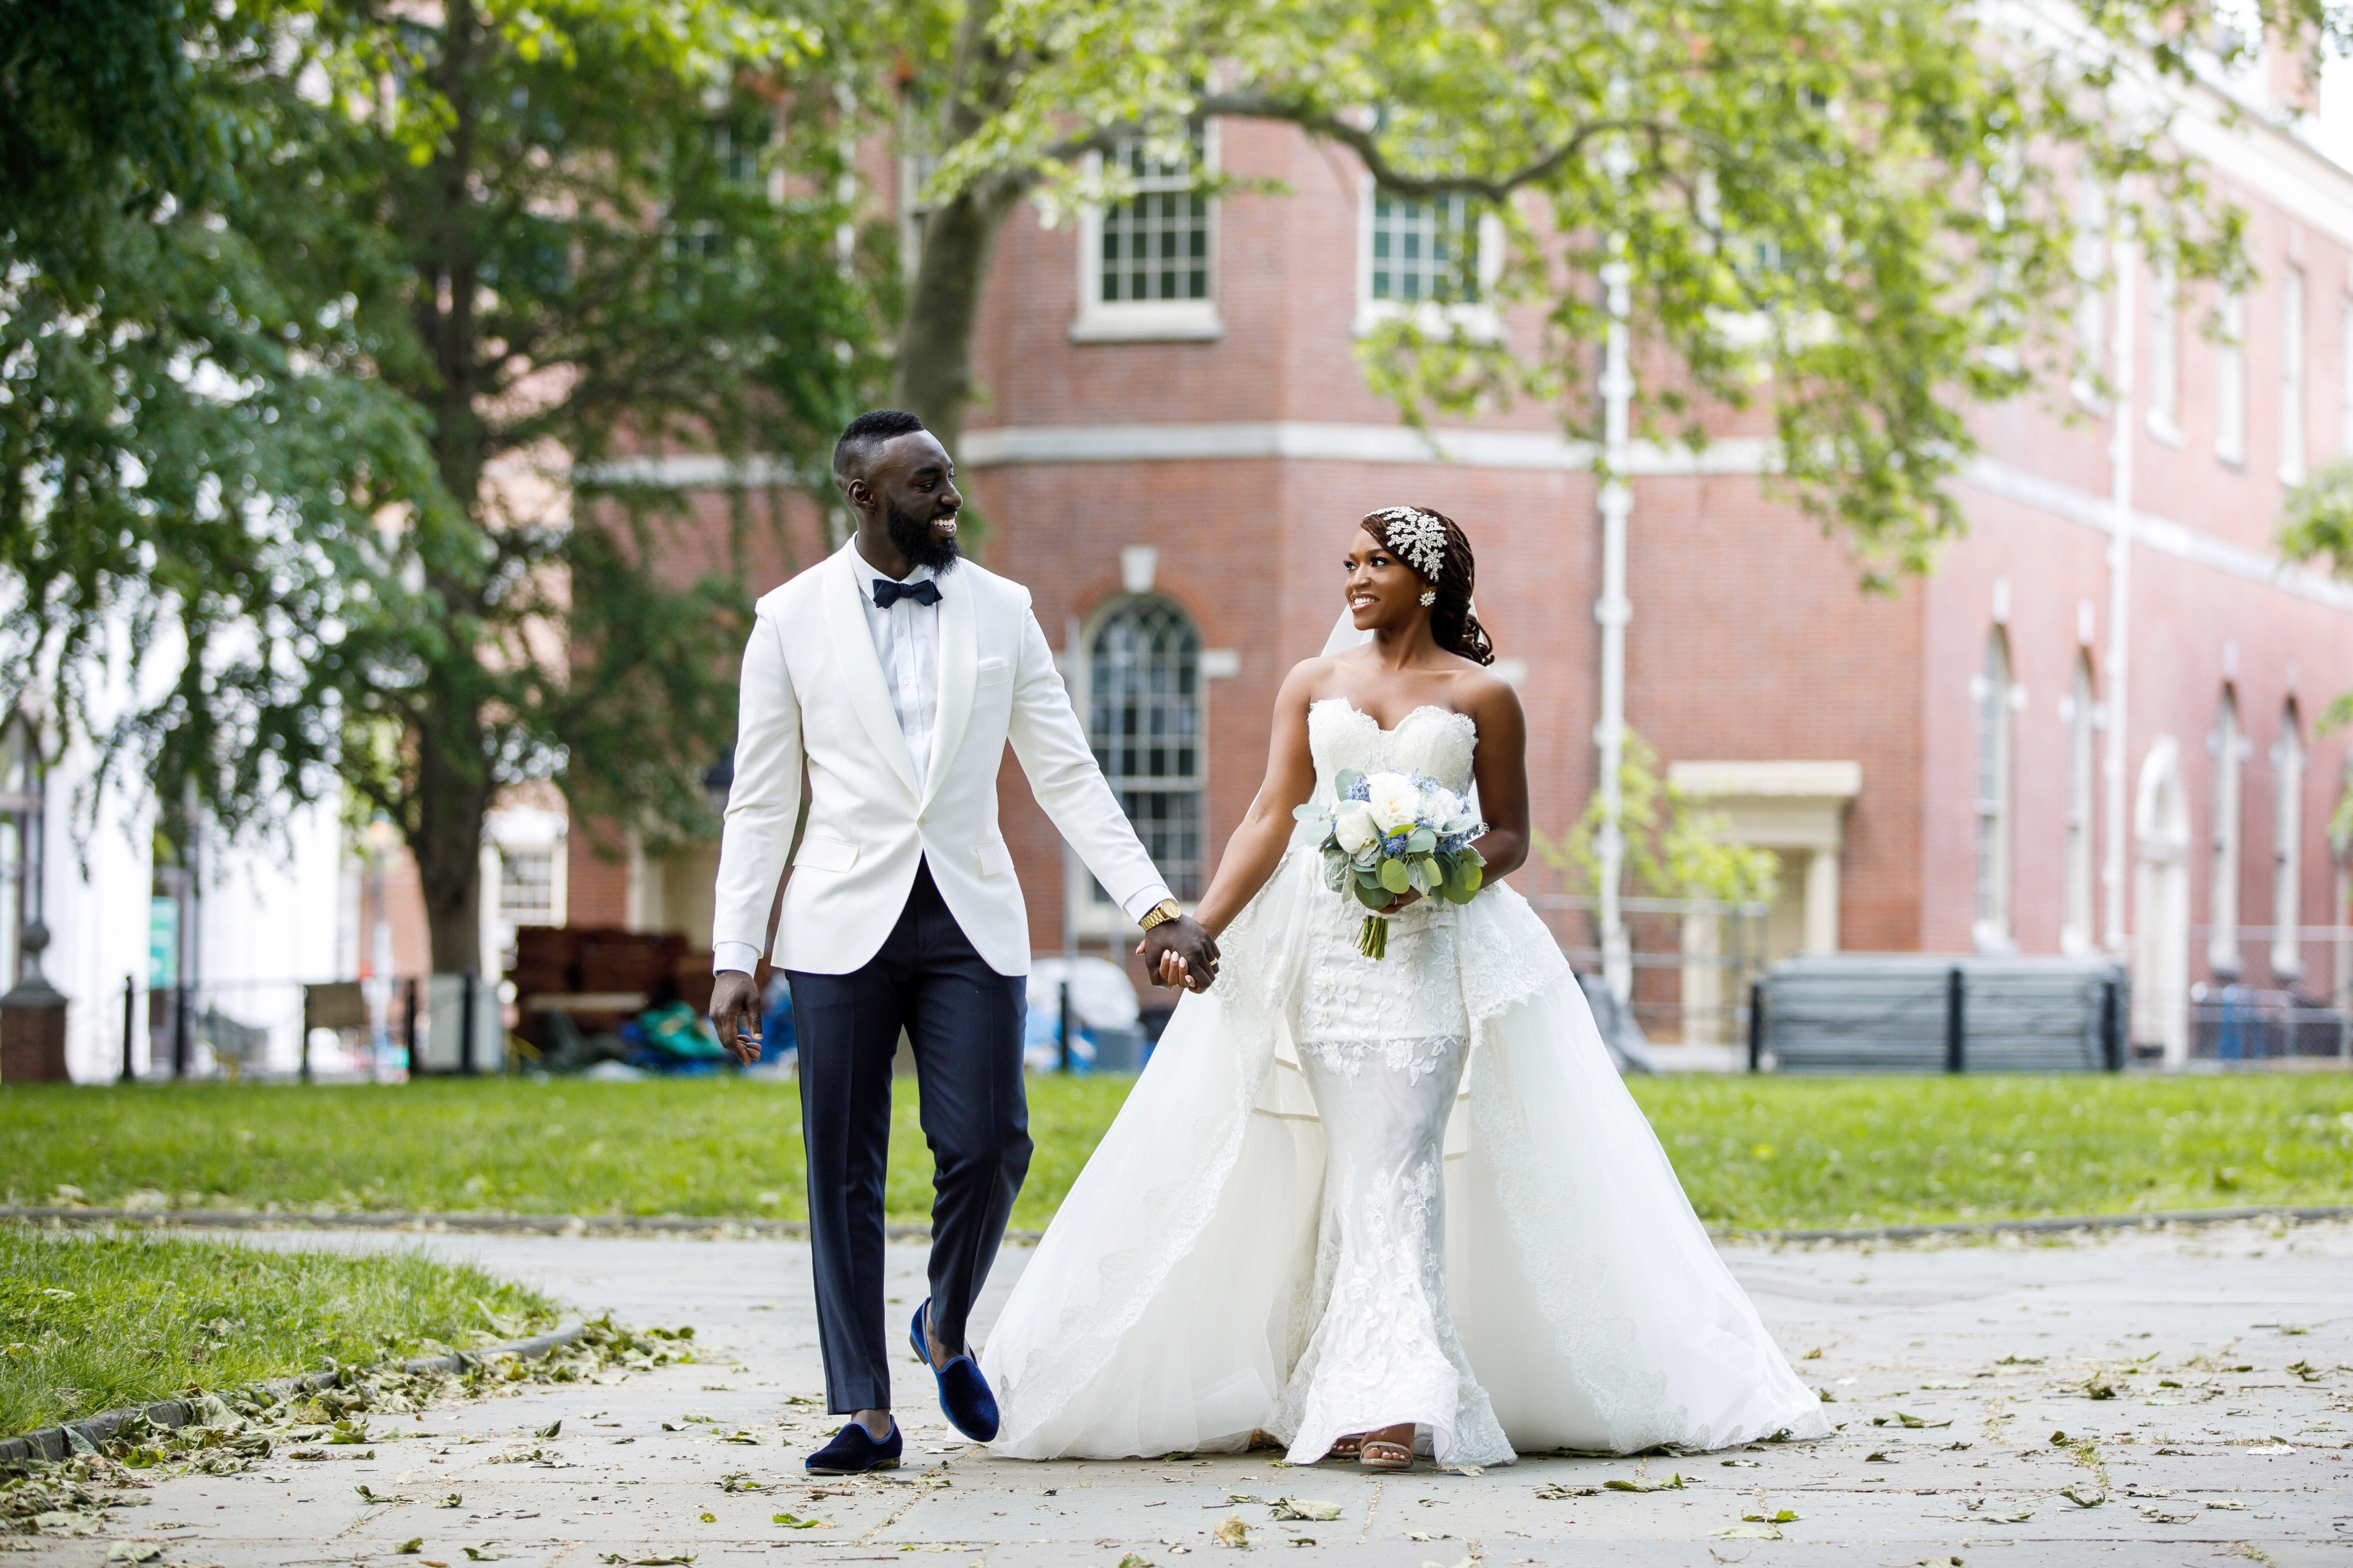 Bridal Bliss Eric And Janell S Philly Wedding Style Deserves Lause